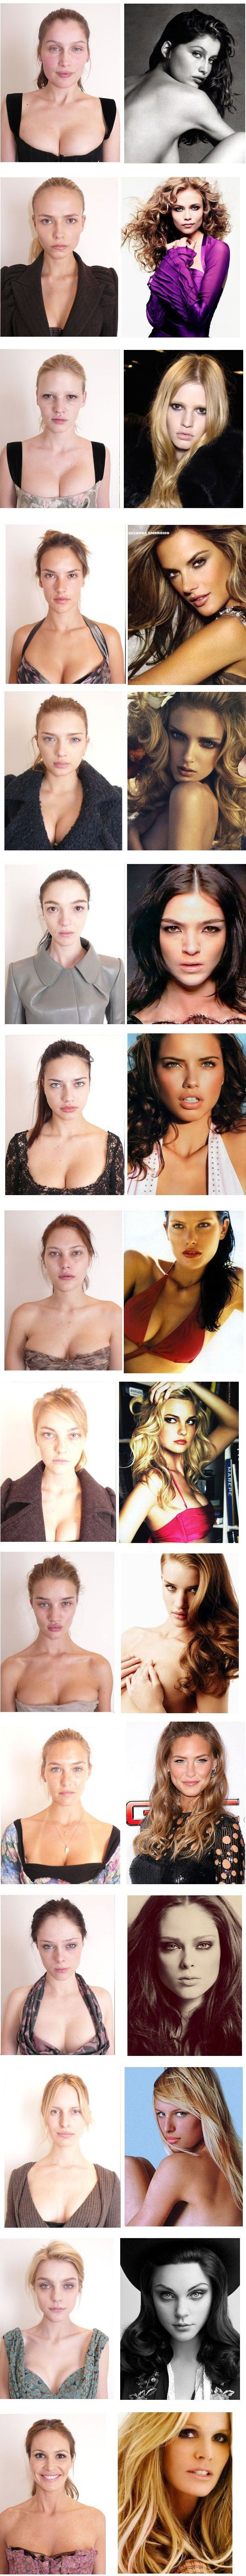 Victoria's Secret Models with No Make Up